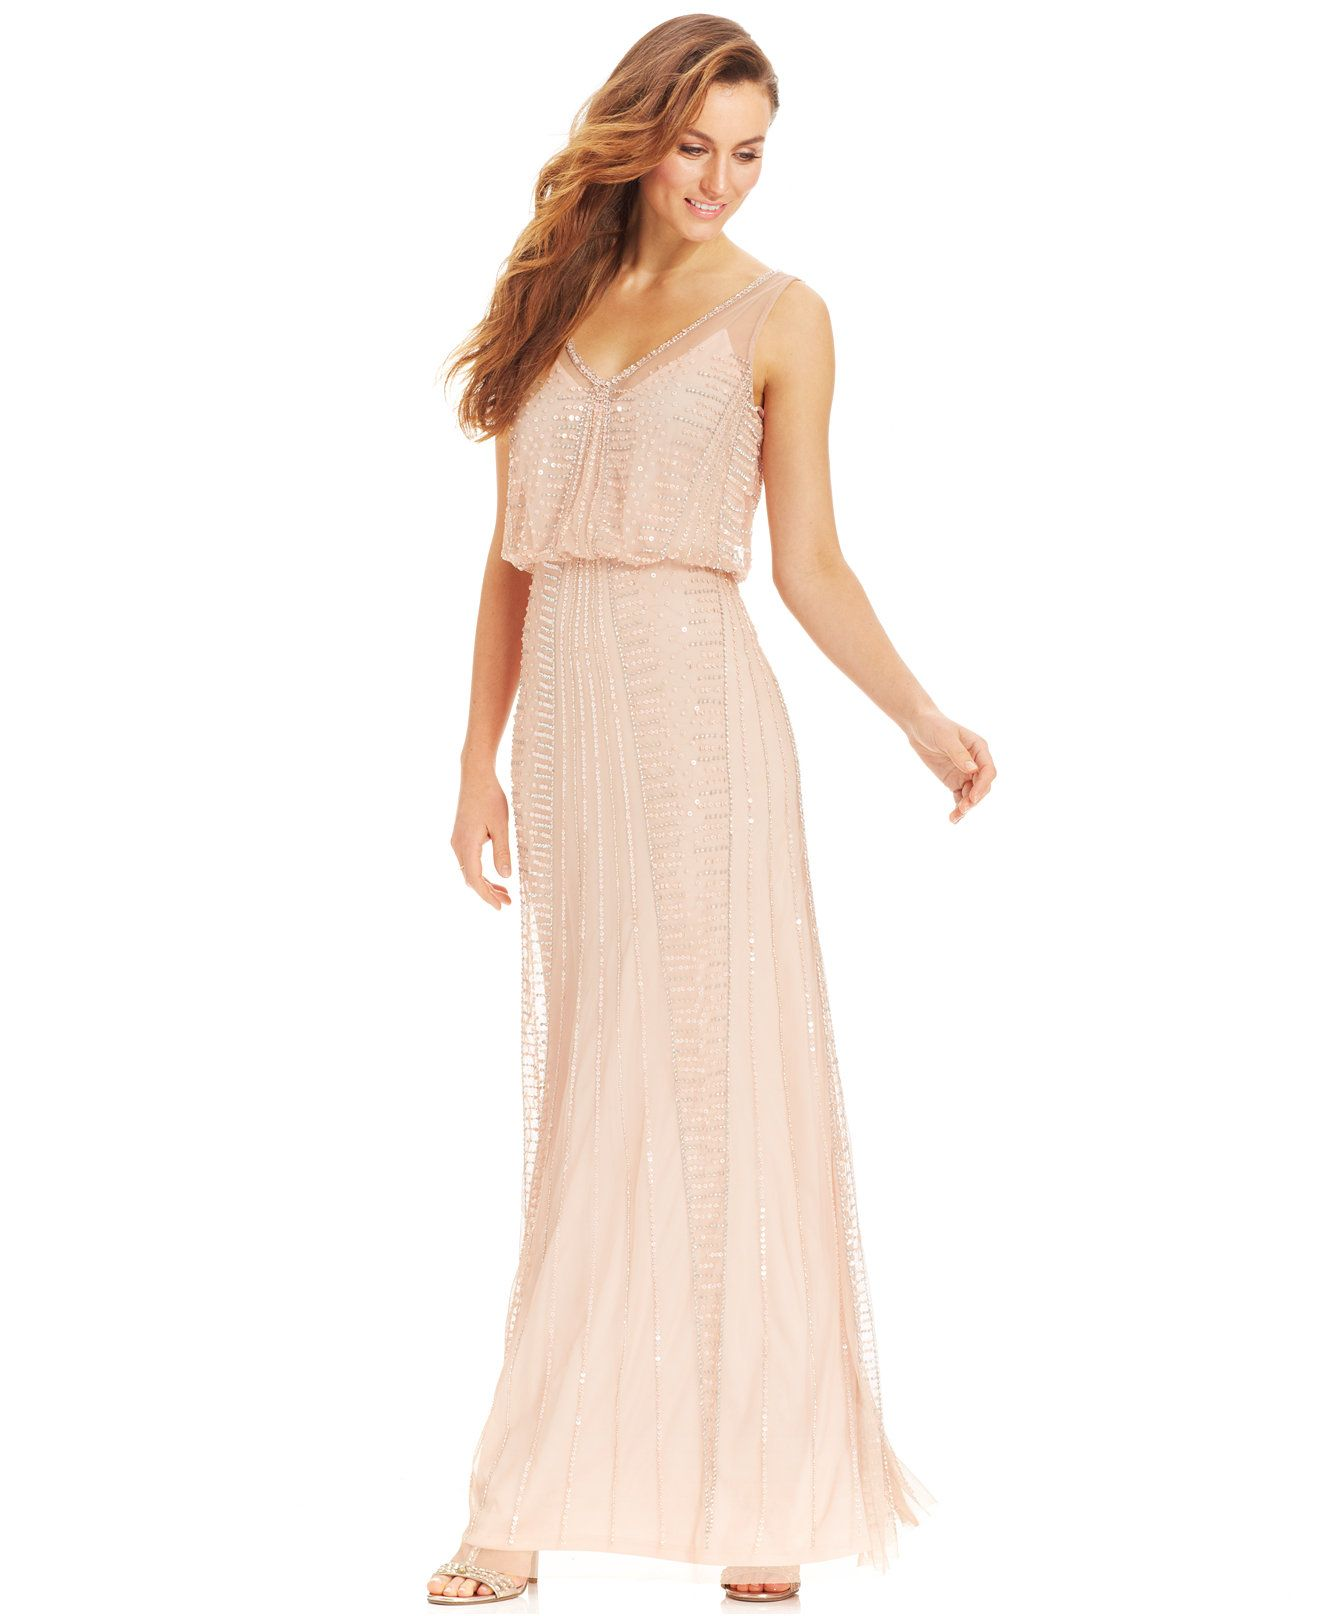 macy wedding dresses not sure the color Adrianna Papell Illusion Beaded Blouson Gown Dresses